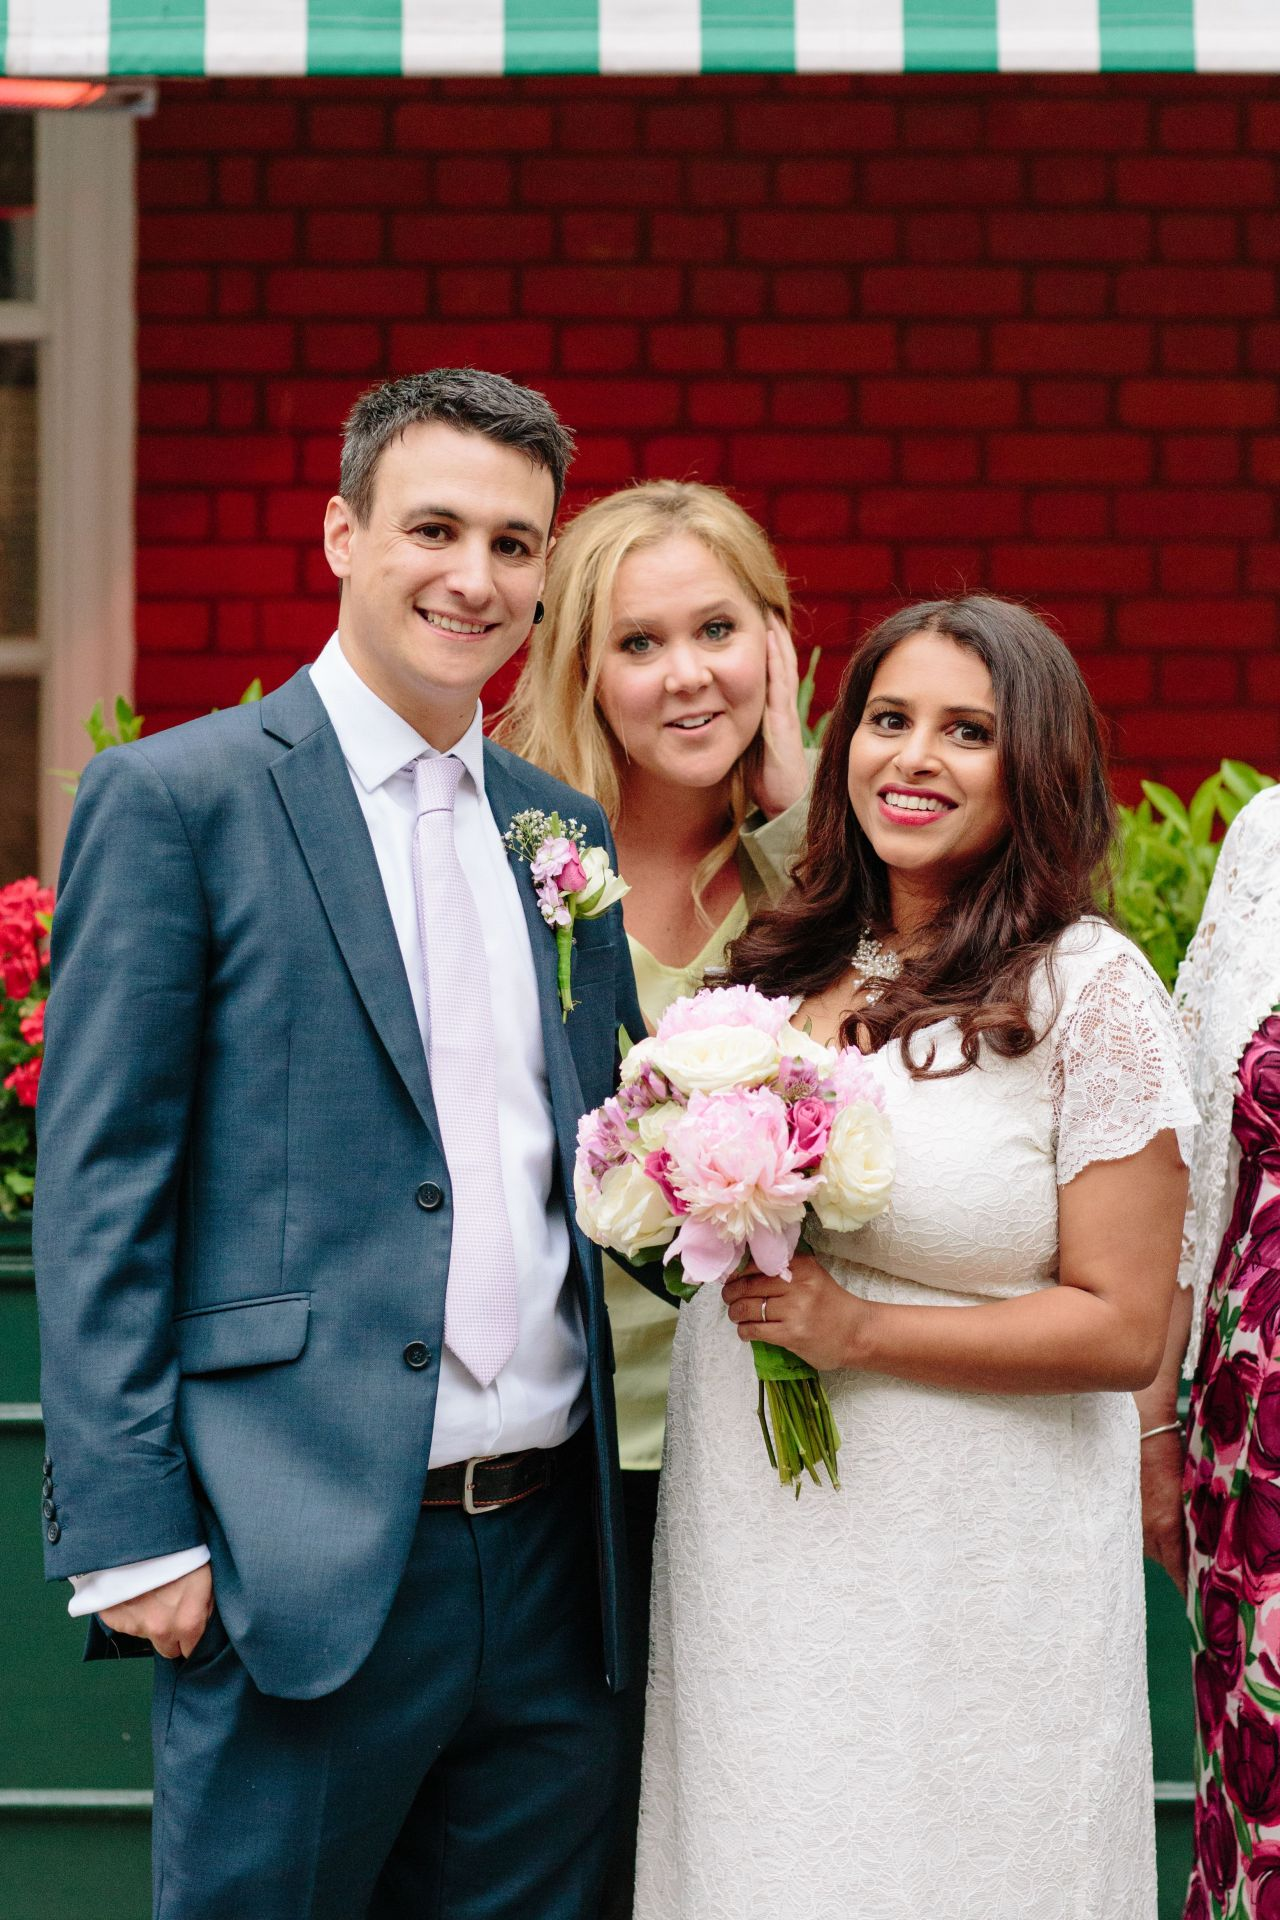 EXCLUSIVE U.S clients: web - $100, print - $250 UK clients: web - �50 per pic, print - fees to be agreed  Mandatory Credit: Photo by Christine Wehrmeier/REX/Shutterstock (8886225b) Amy Schumer photobombs Jasmin Pereira & Jon Bates wedding photos Amy Schumer photobombs wedding photos, Mayfair, London, UK - 29 Jun 2017 A couple got the shock of their lives when posing for their wedding photos in Mayfair - when none other than Amy Schumer suddenly popped up behind them! After tying the knot at Mayfair Library Jasmin Pereira & Jon Bates headed outside to get some photos. However, their day was made even more memorable by their celebrity photobomber! As Jasmin and Jon posed near to Harry's Bar they were unexpectedly joined by actress Amy who was on her way to meet designer pal Stella McCartney. After crashing their photos she also kindly allowed the couple to use her private car for further snaps